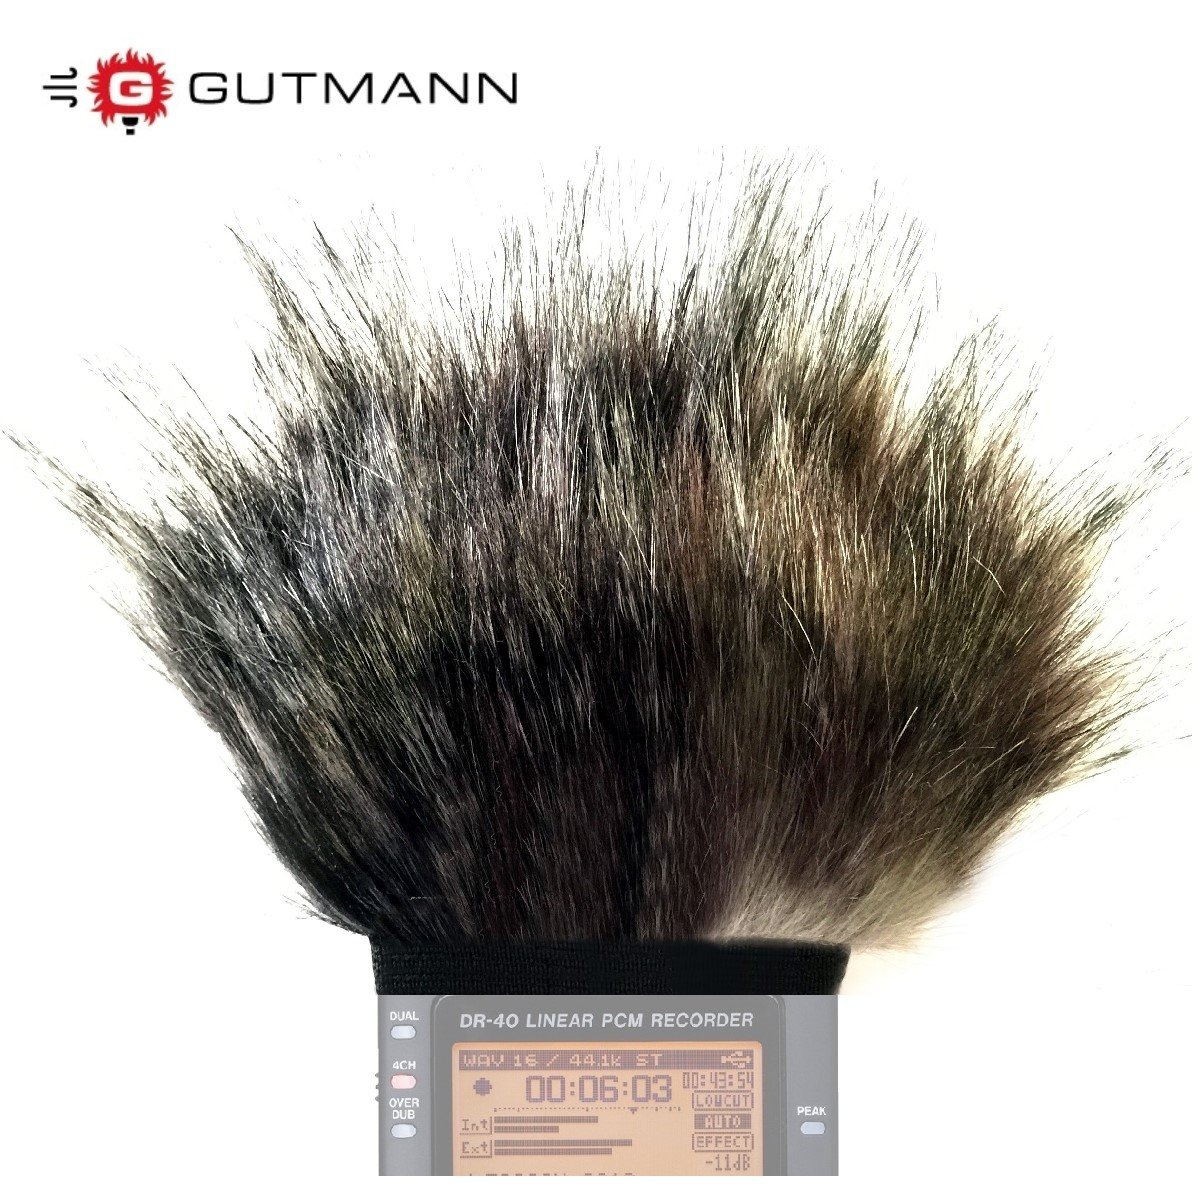 Gutmann Microphone Windshield, Windscreen for Tascam DR-40 / DR-40 V2 Digital Recorder - Special Model MERCURY (Limited Edition) by Gutmann